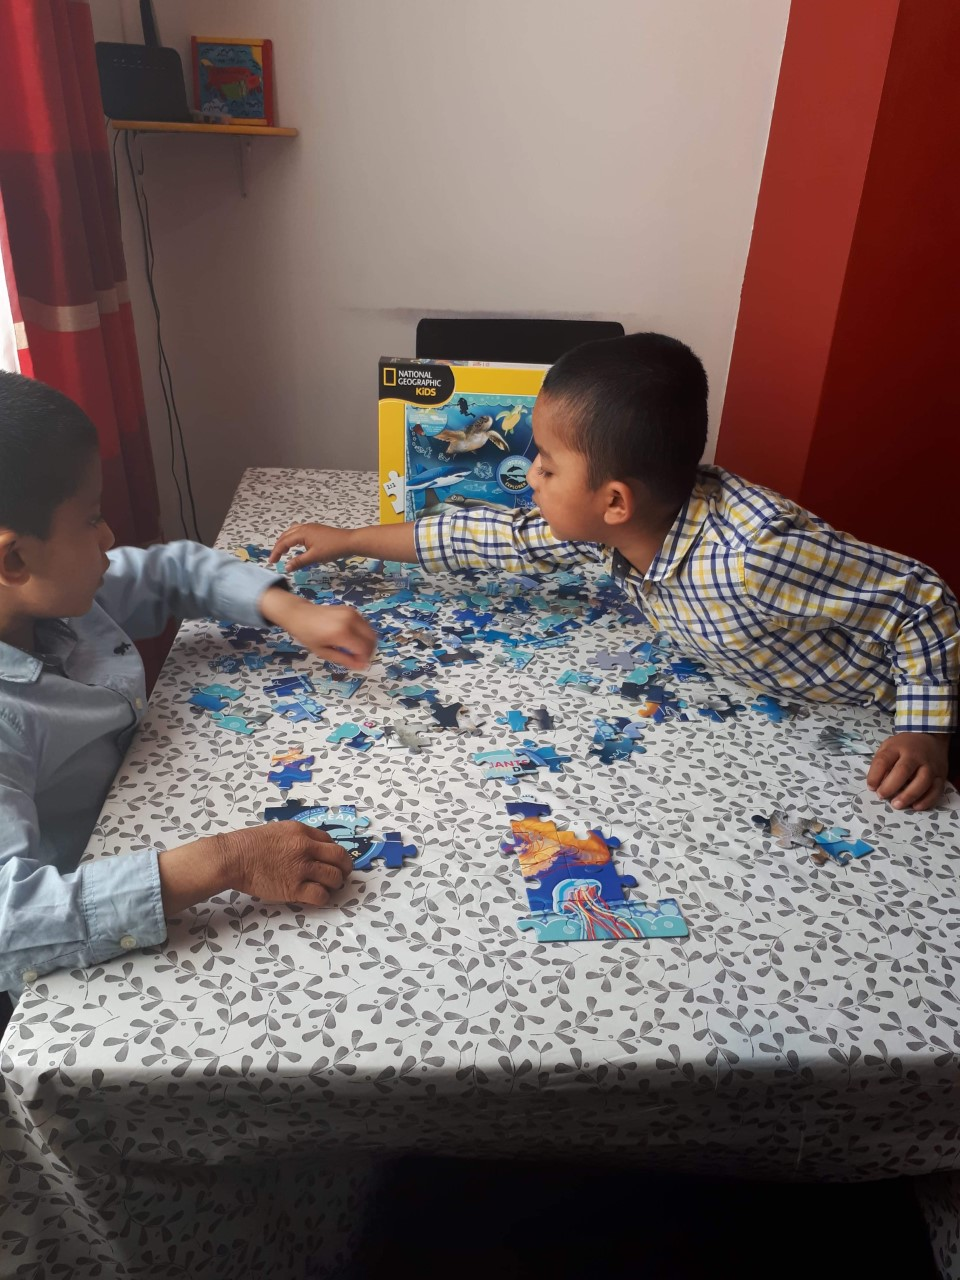 Two children work on a jigsaw together